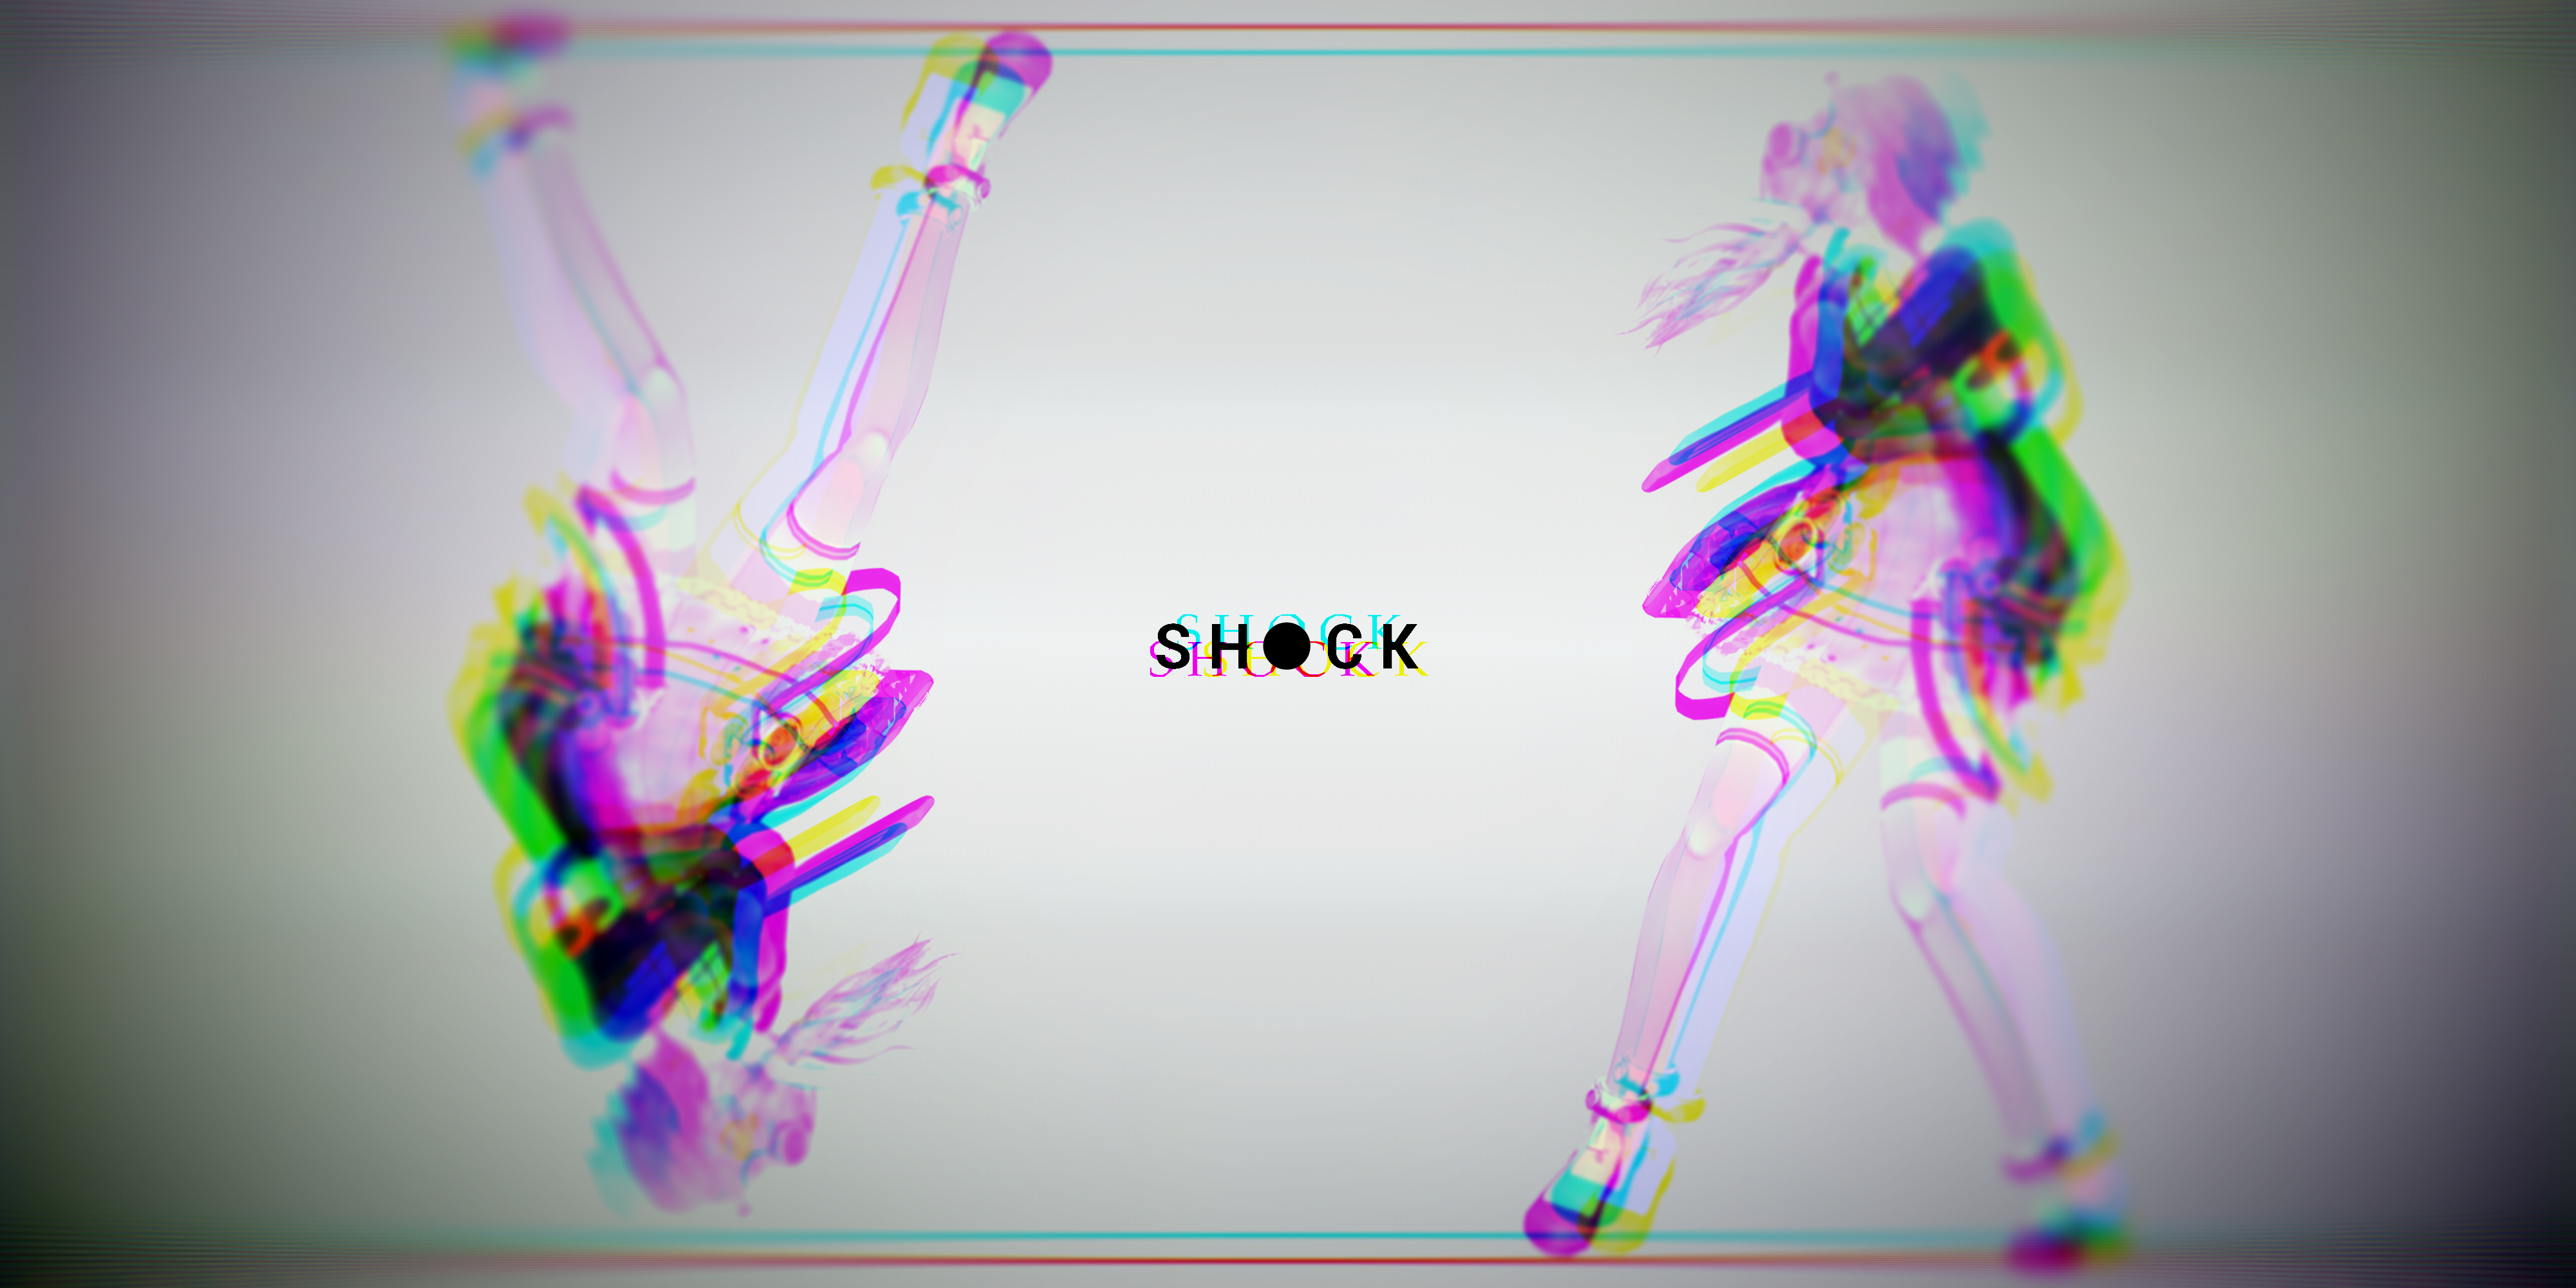 S H O C K by ThisIsBreadie